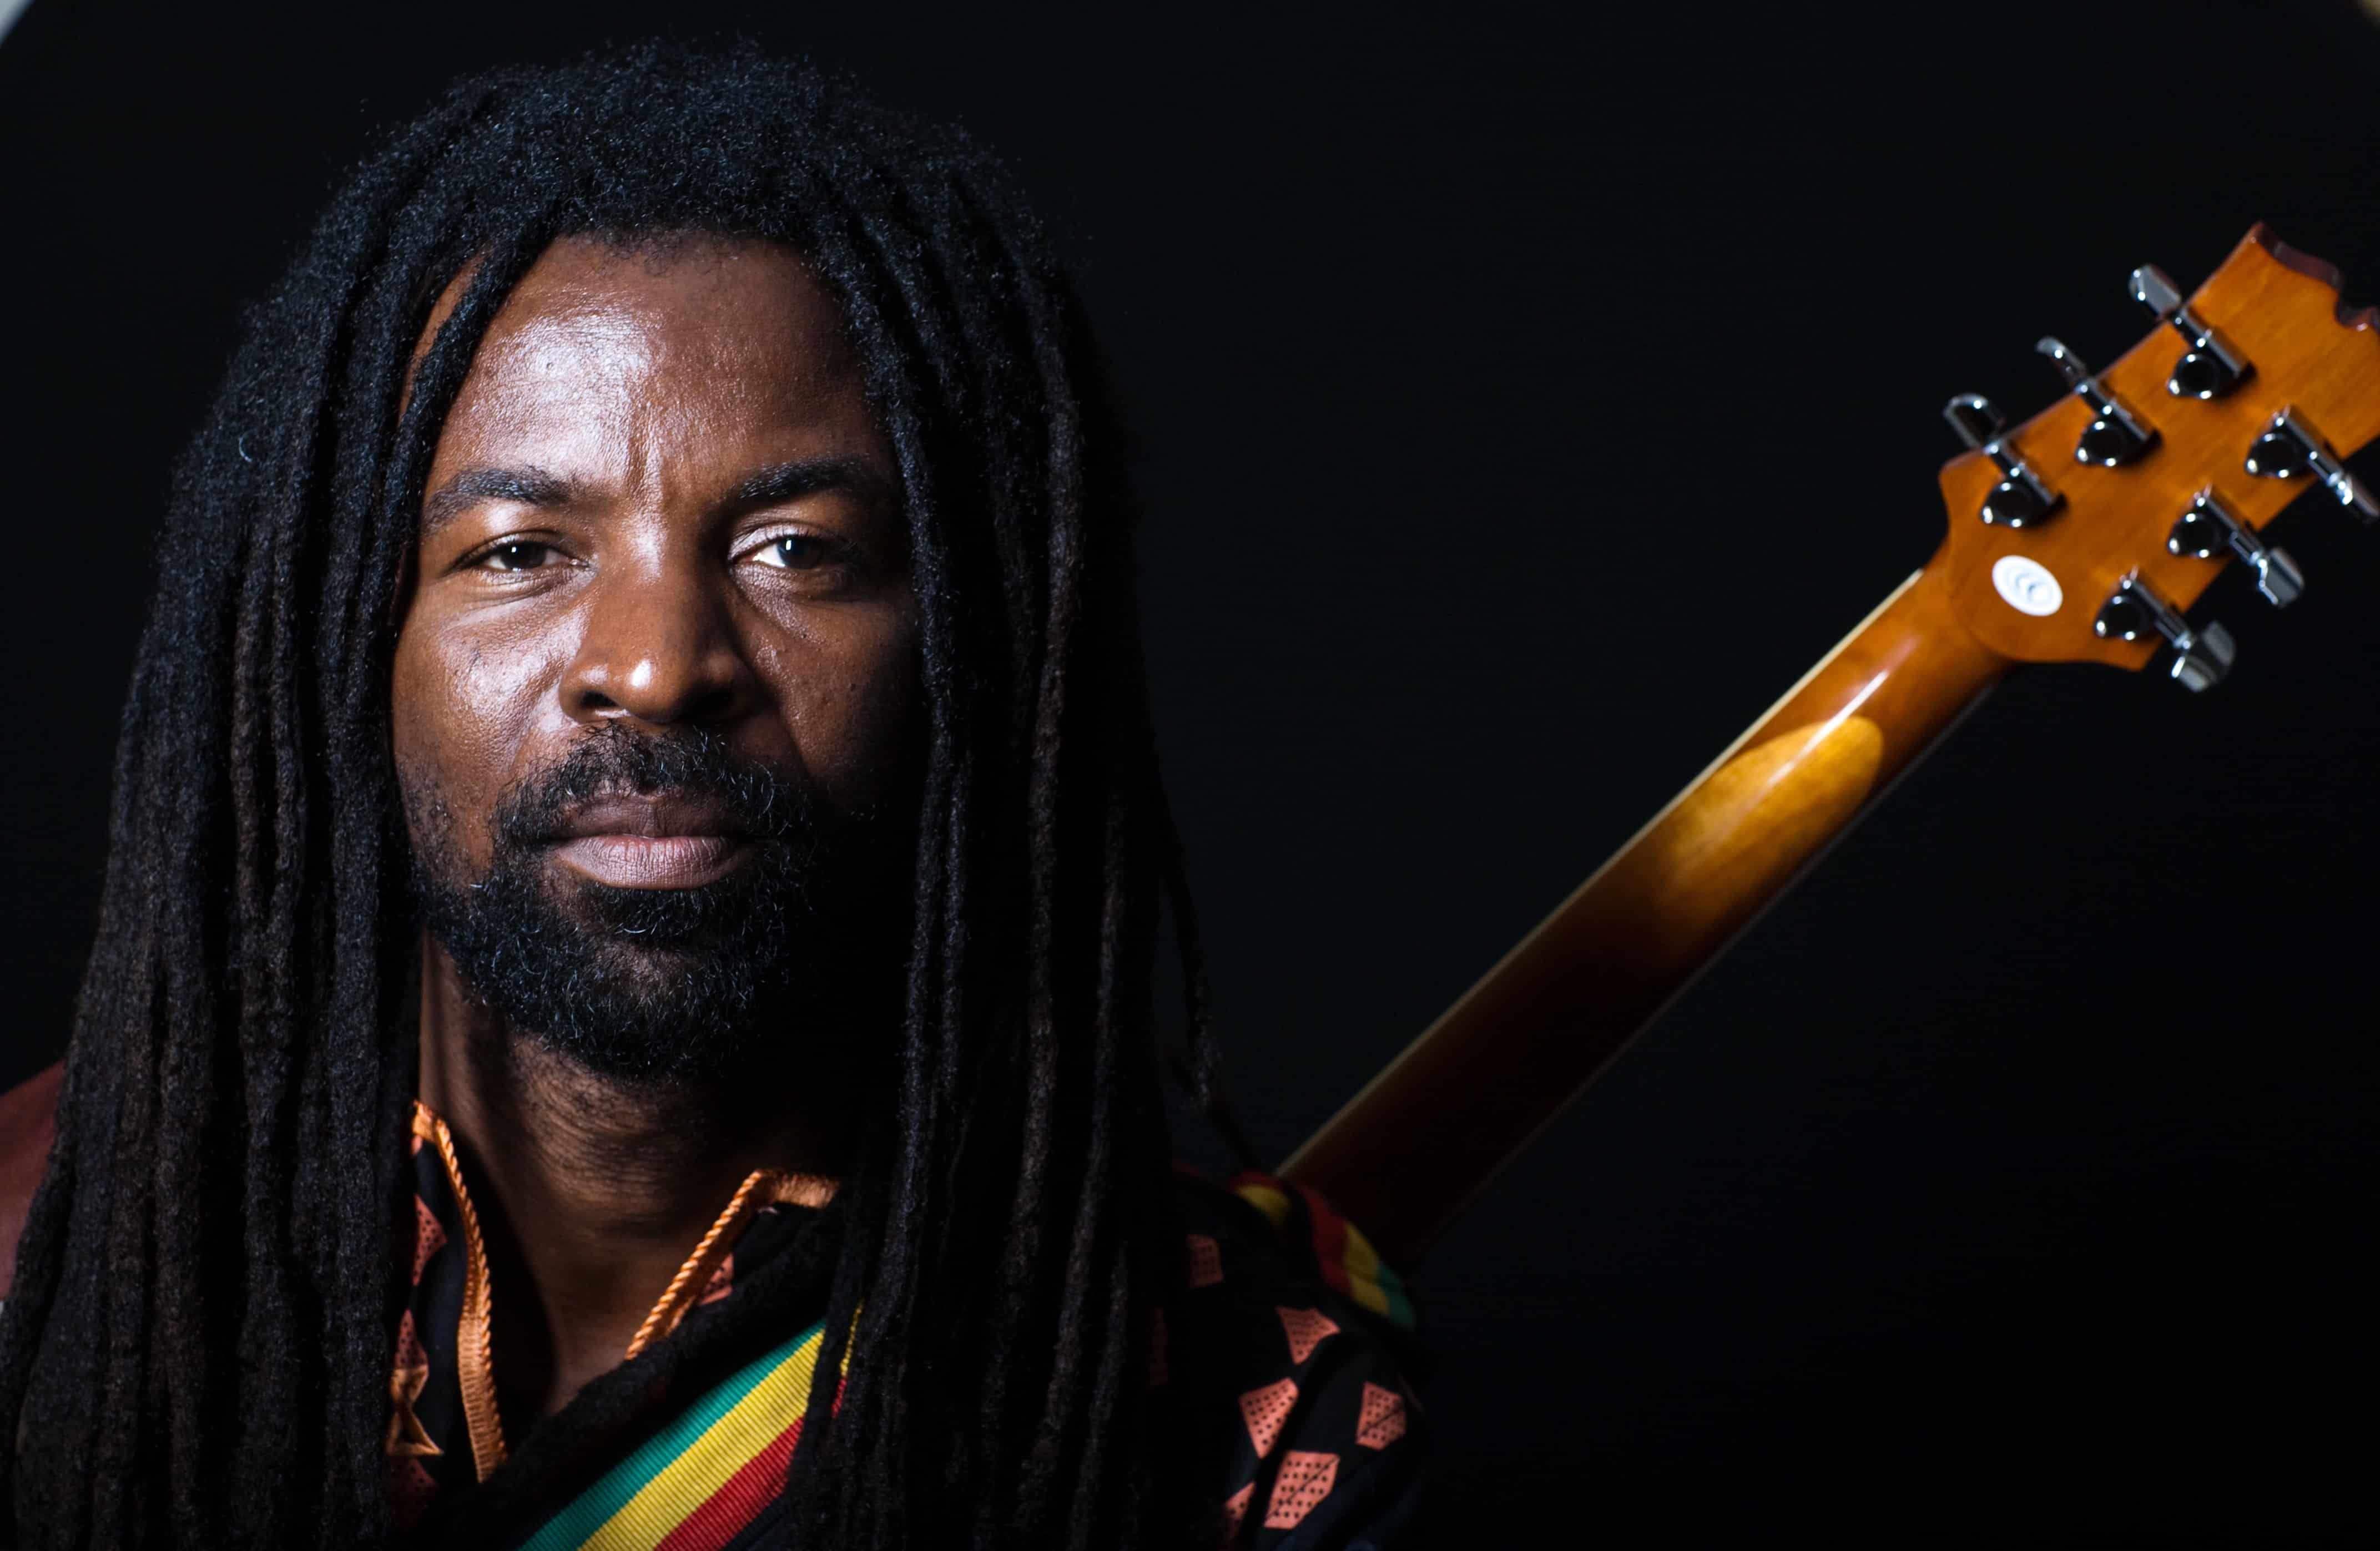 Infuse More Live Band In Your Performances – Rocky Dawuni advises musicians